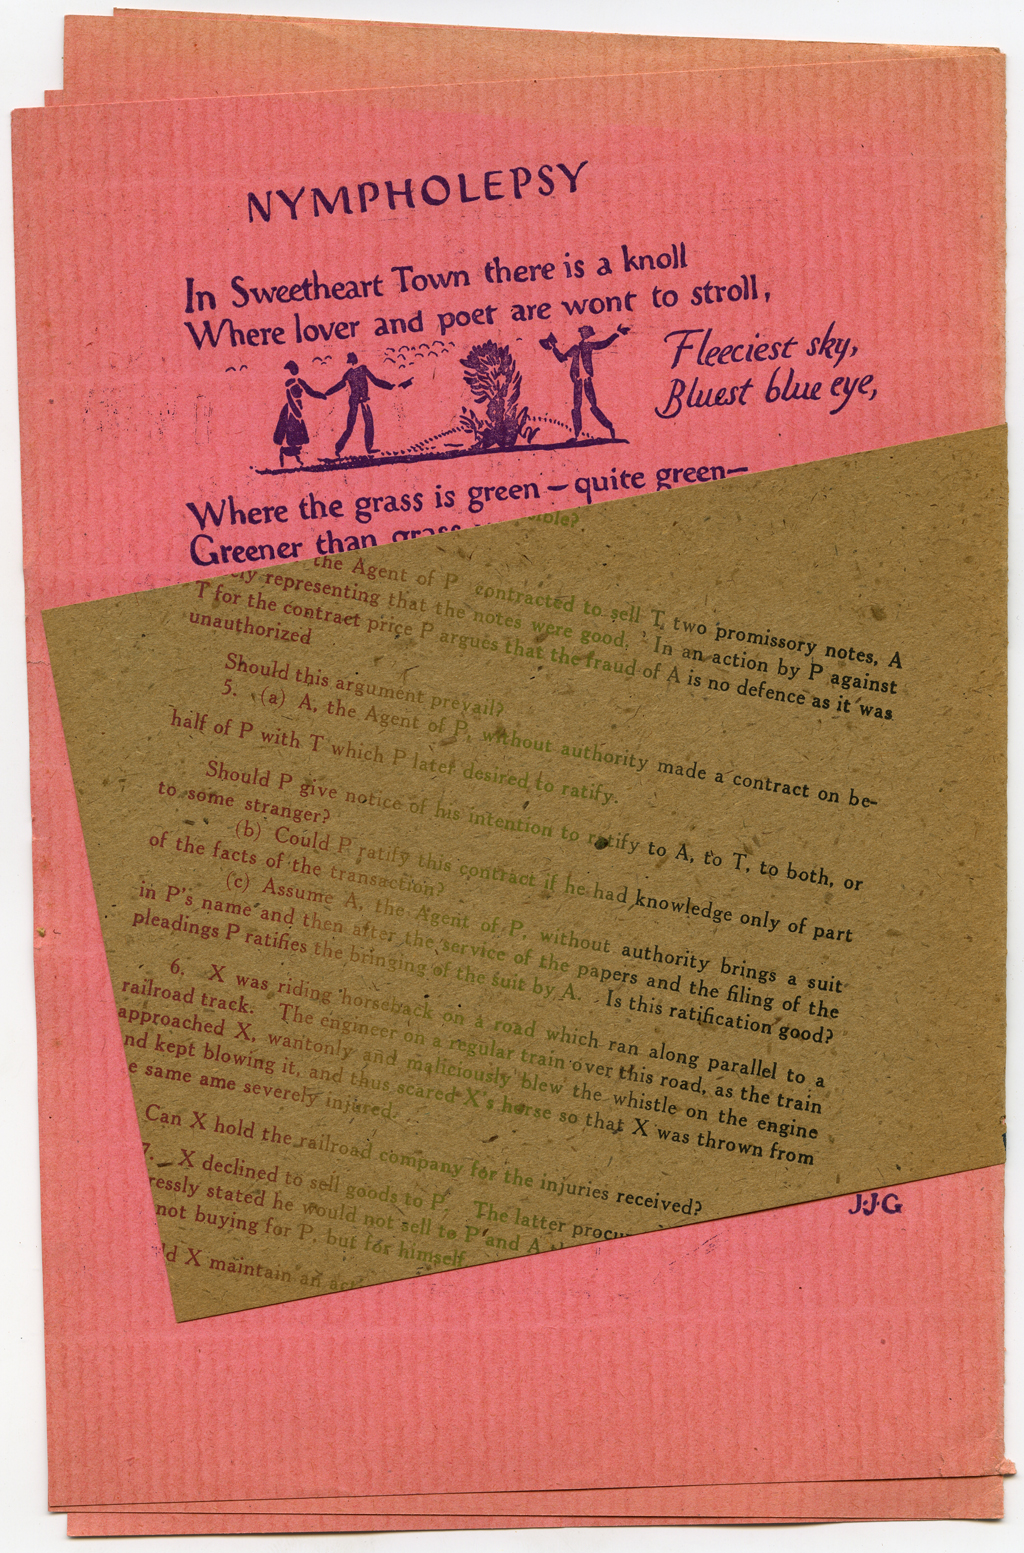 Back cover with wrapper of Vague (1915). Design by W.A. Dwiggins.